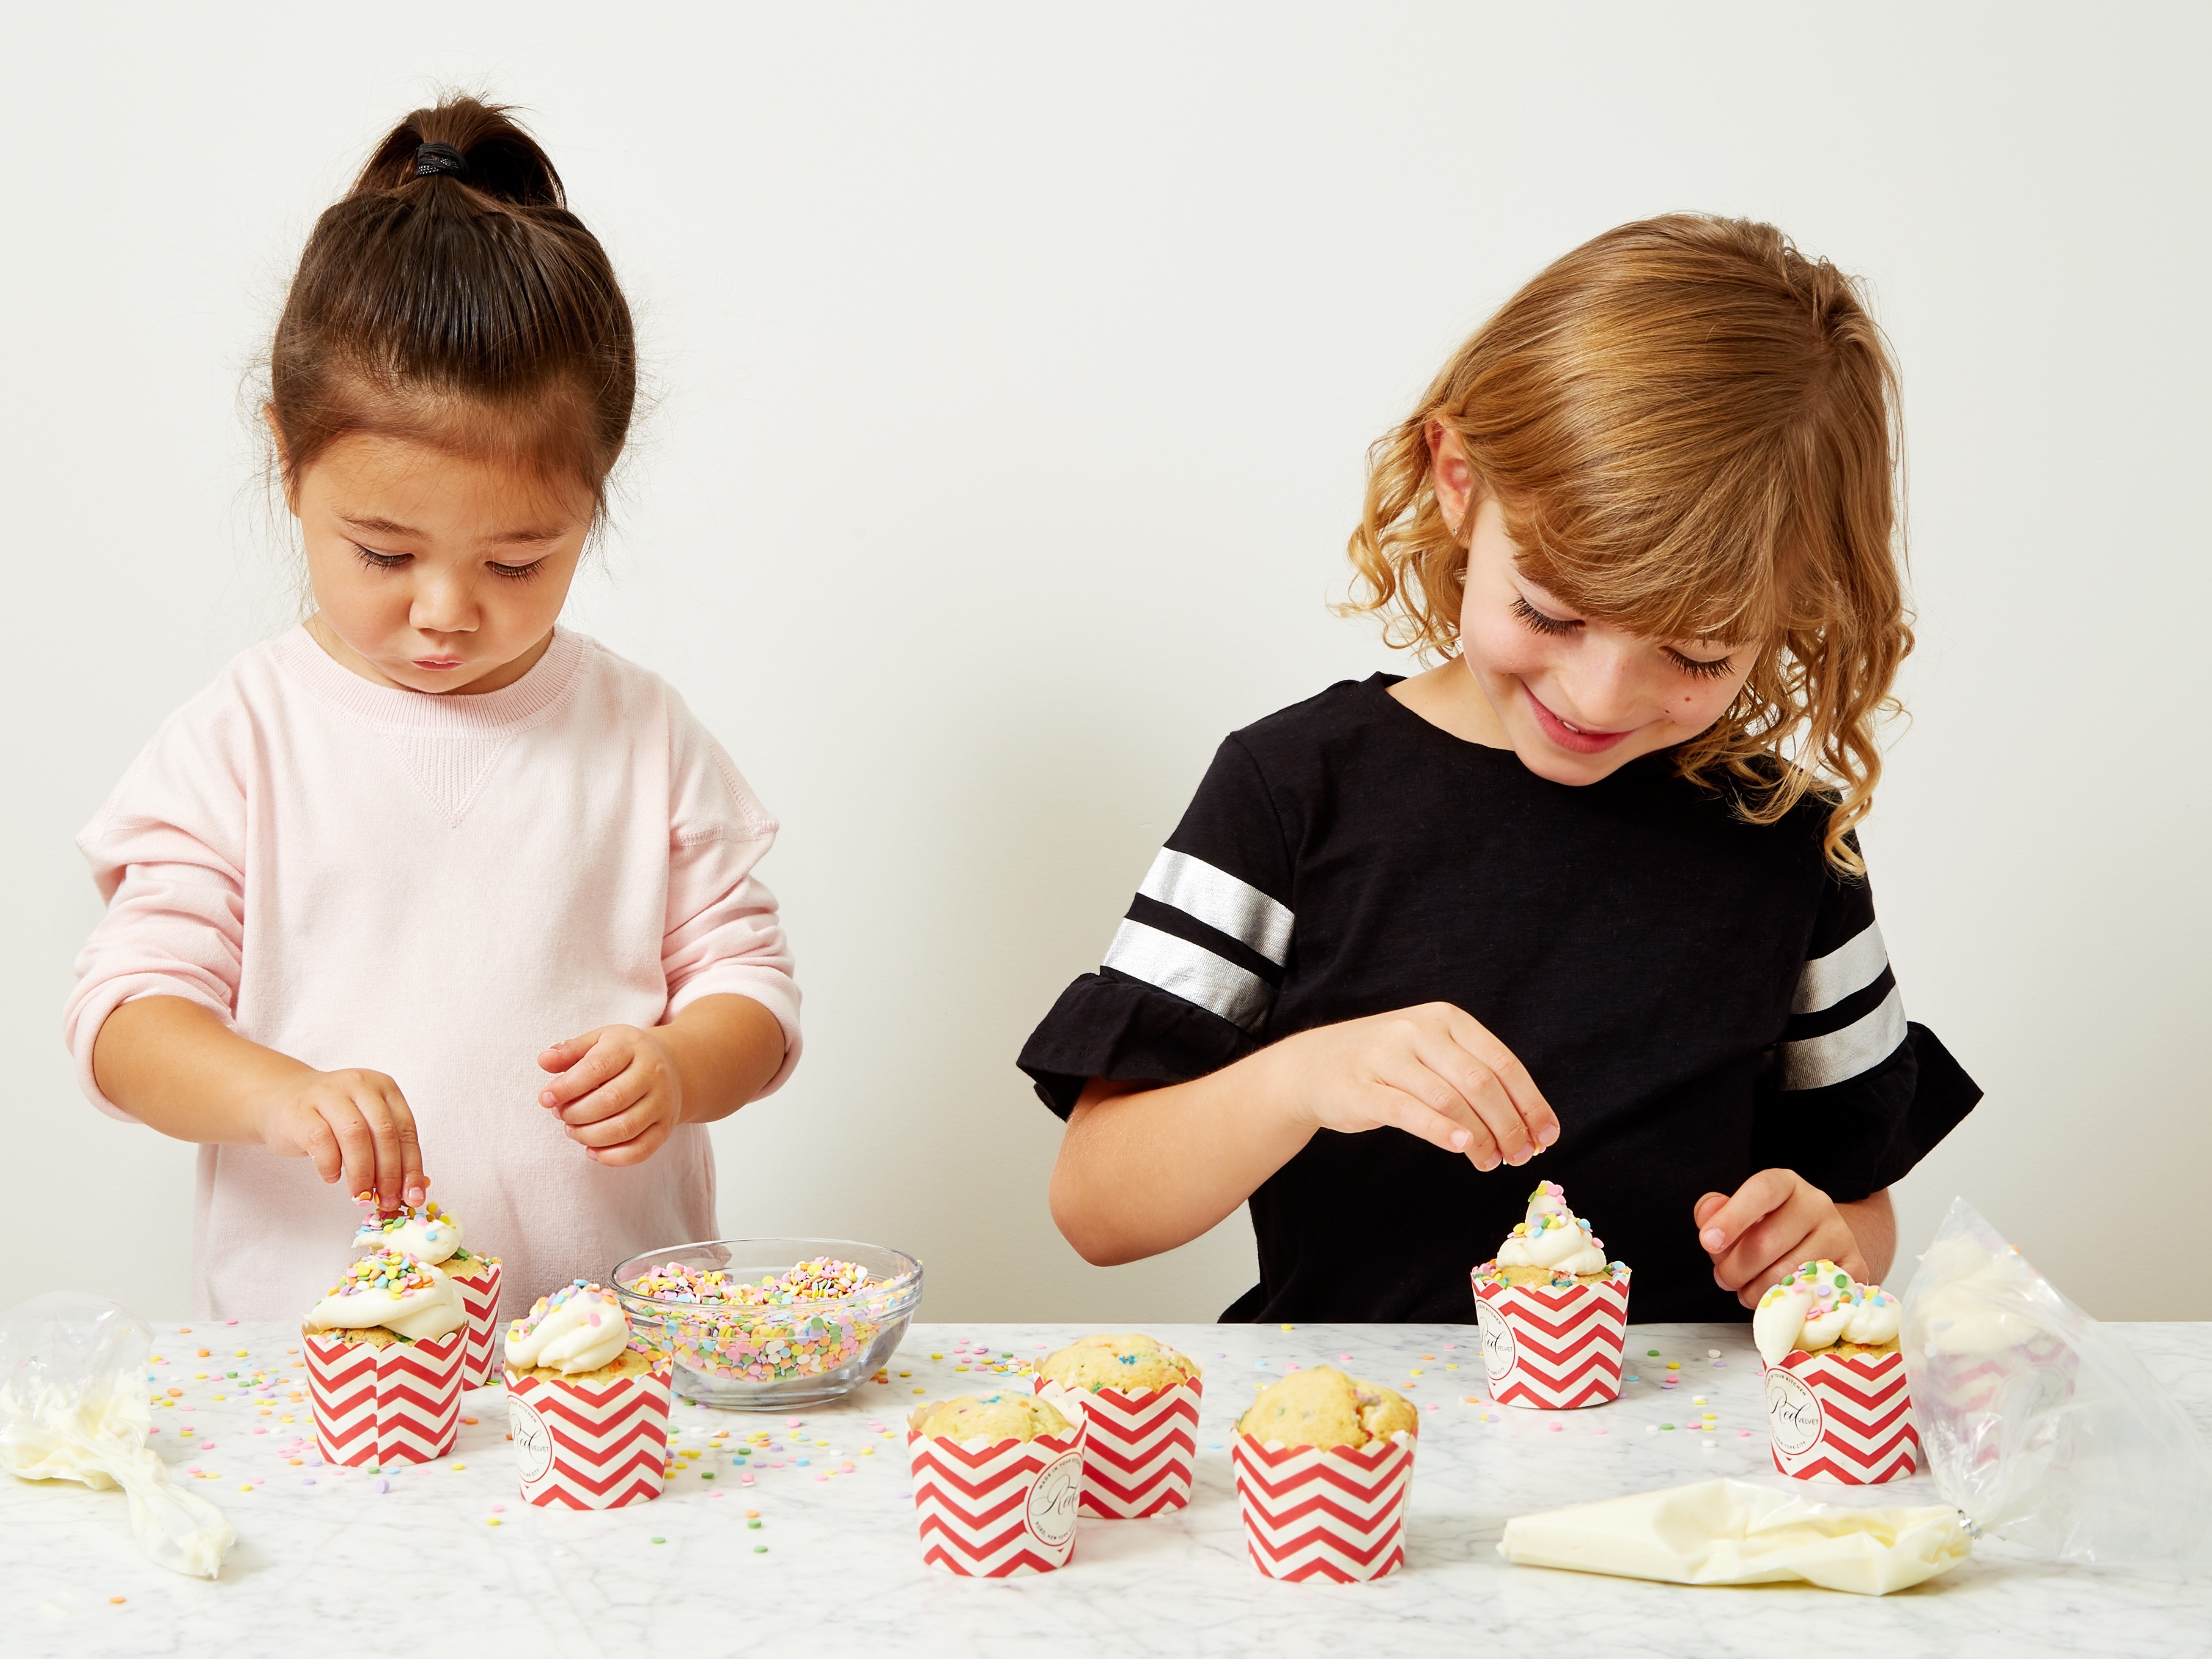 Two little girls are seen decorating cupcakes from Red Velvet NYC